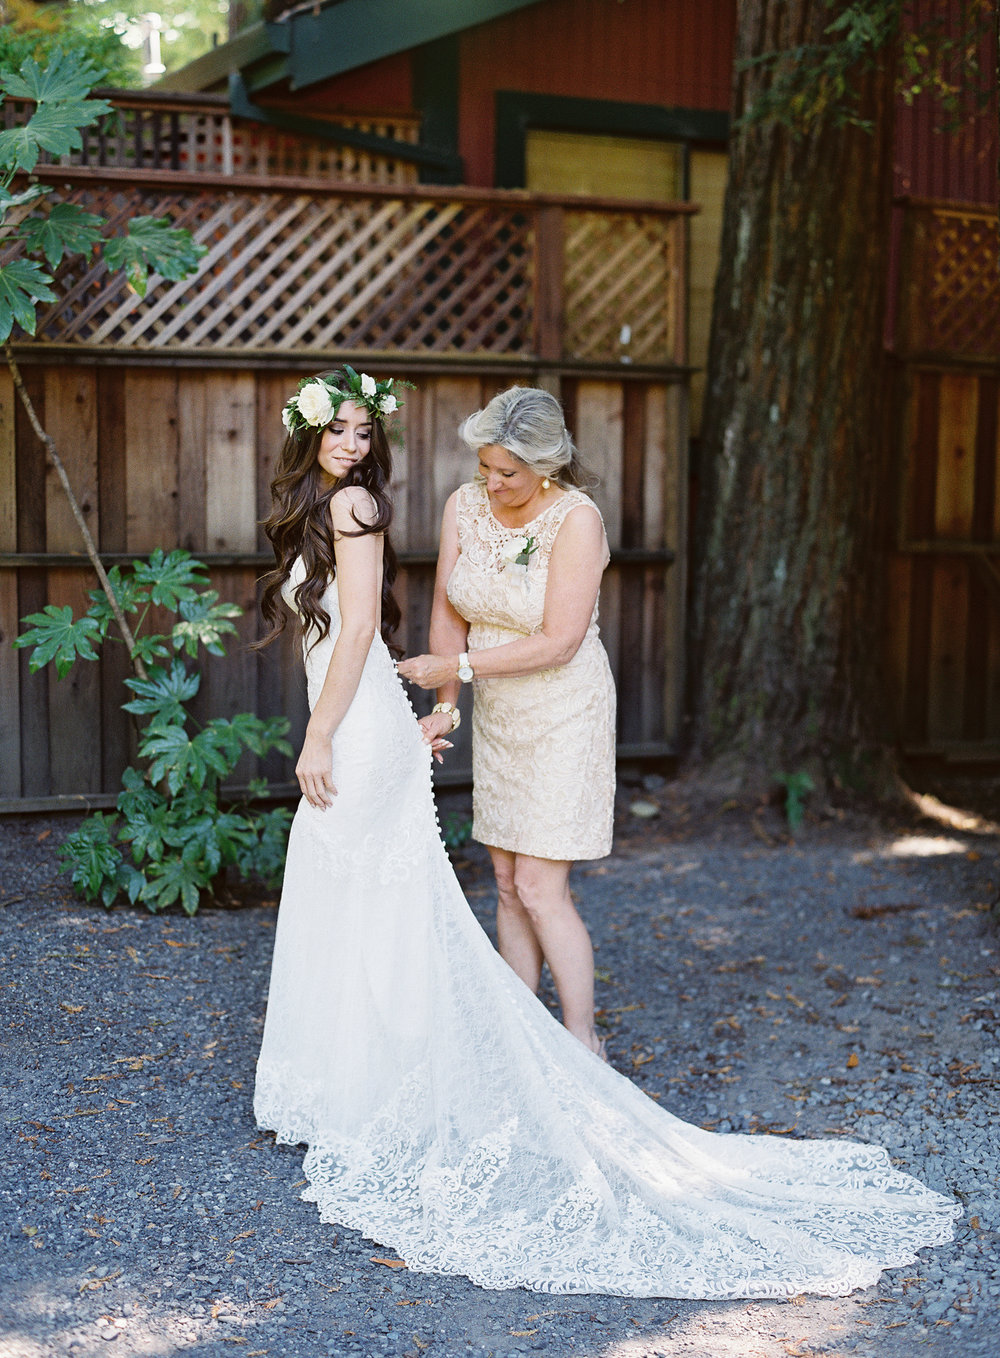 Meghan Mehan Photography | California Wedding Photographer | Napa California Wedding Photographer 055.jpg